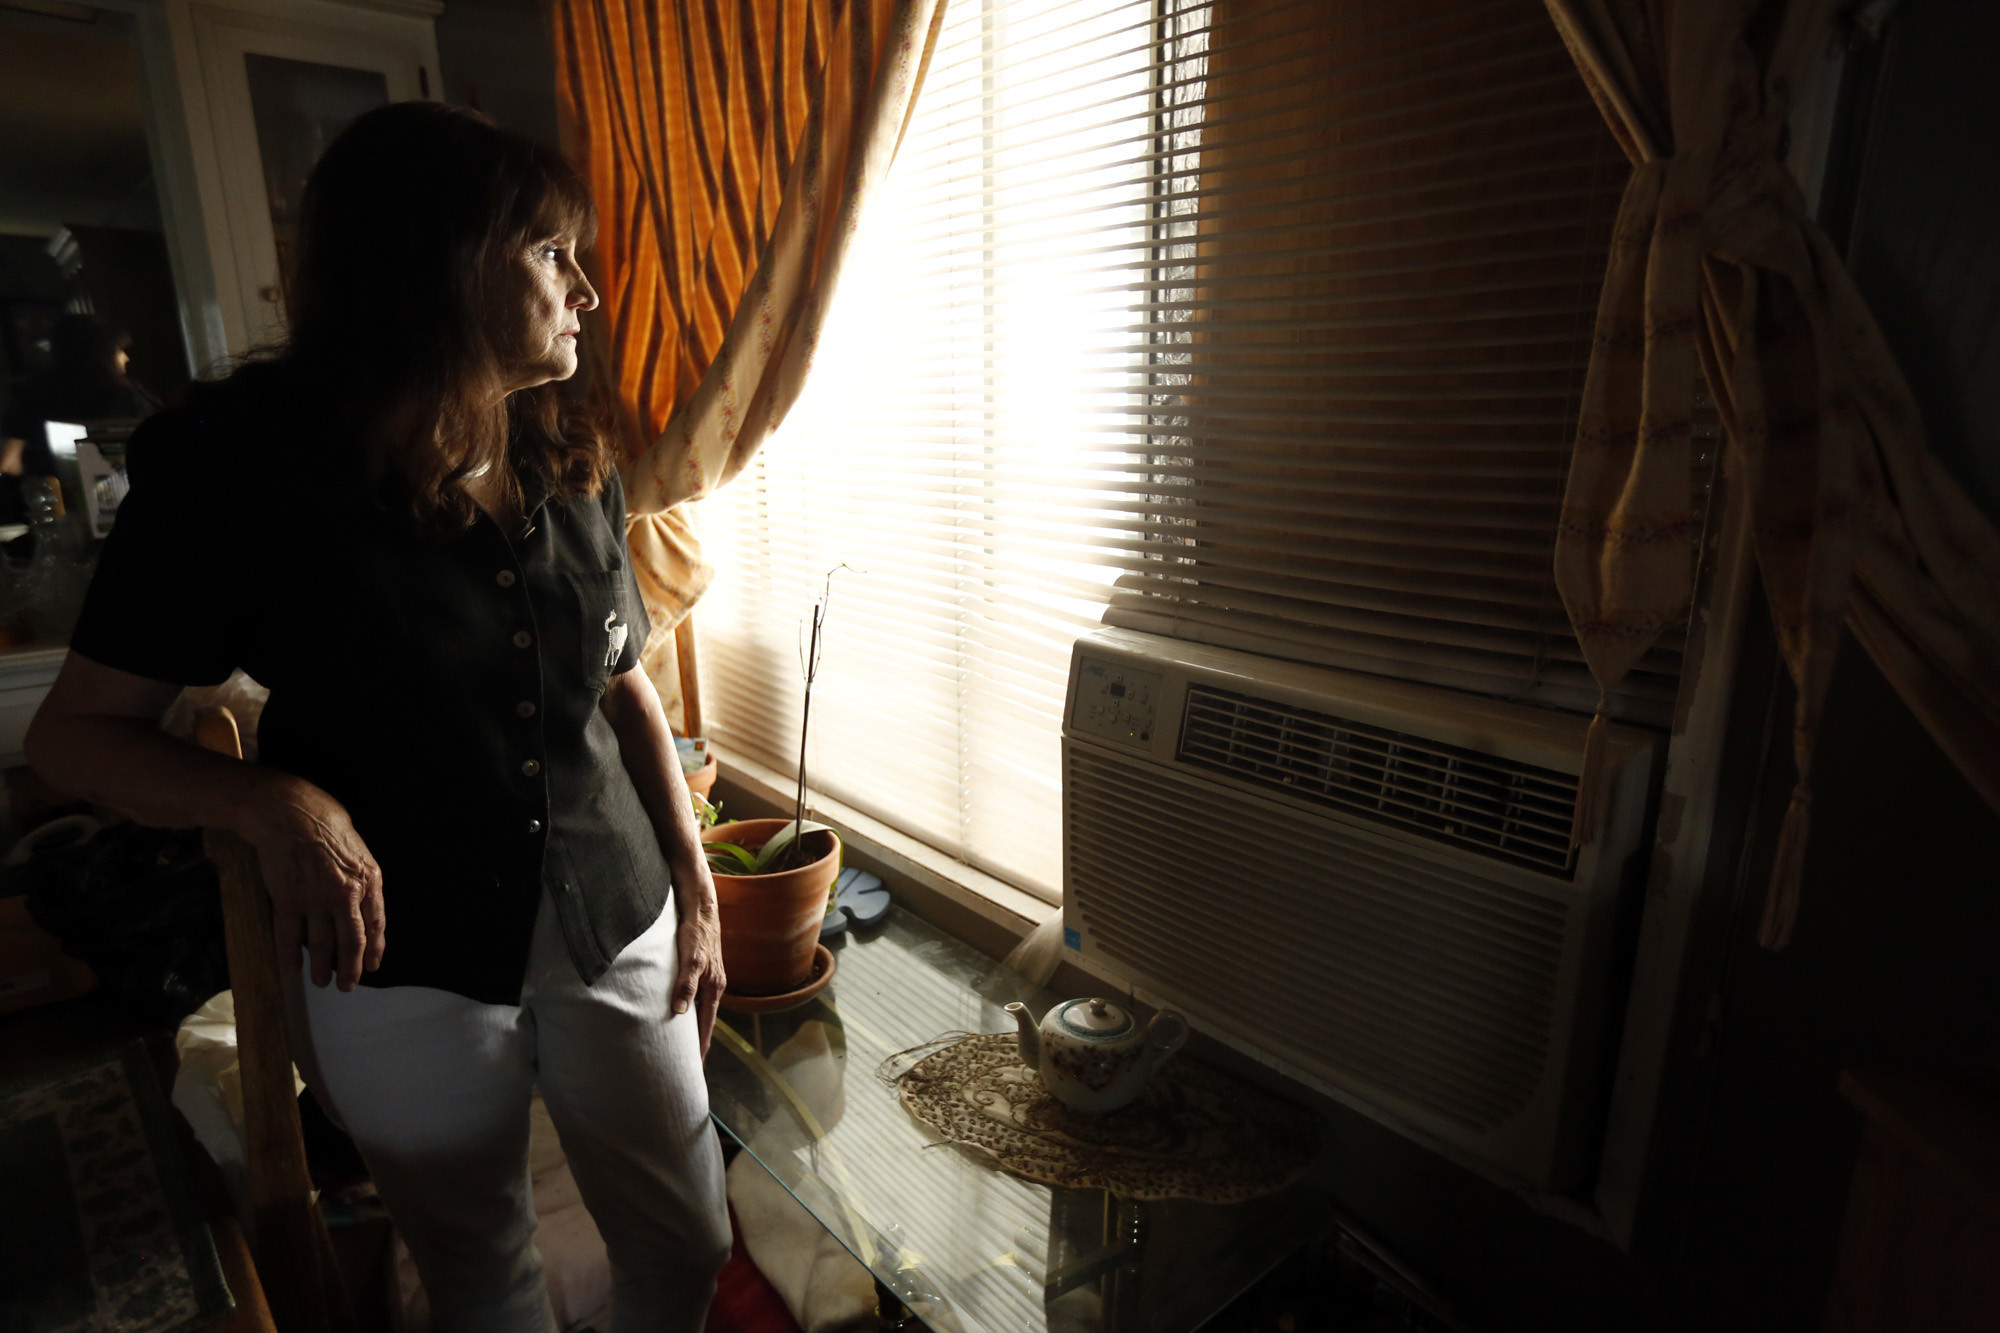 SUN VALLEY, CA — NOVEMBER 7, 2017 — Joan Winget, 75, stands next to her air conditioner that she l